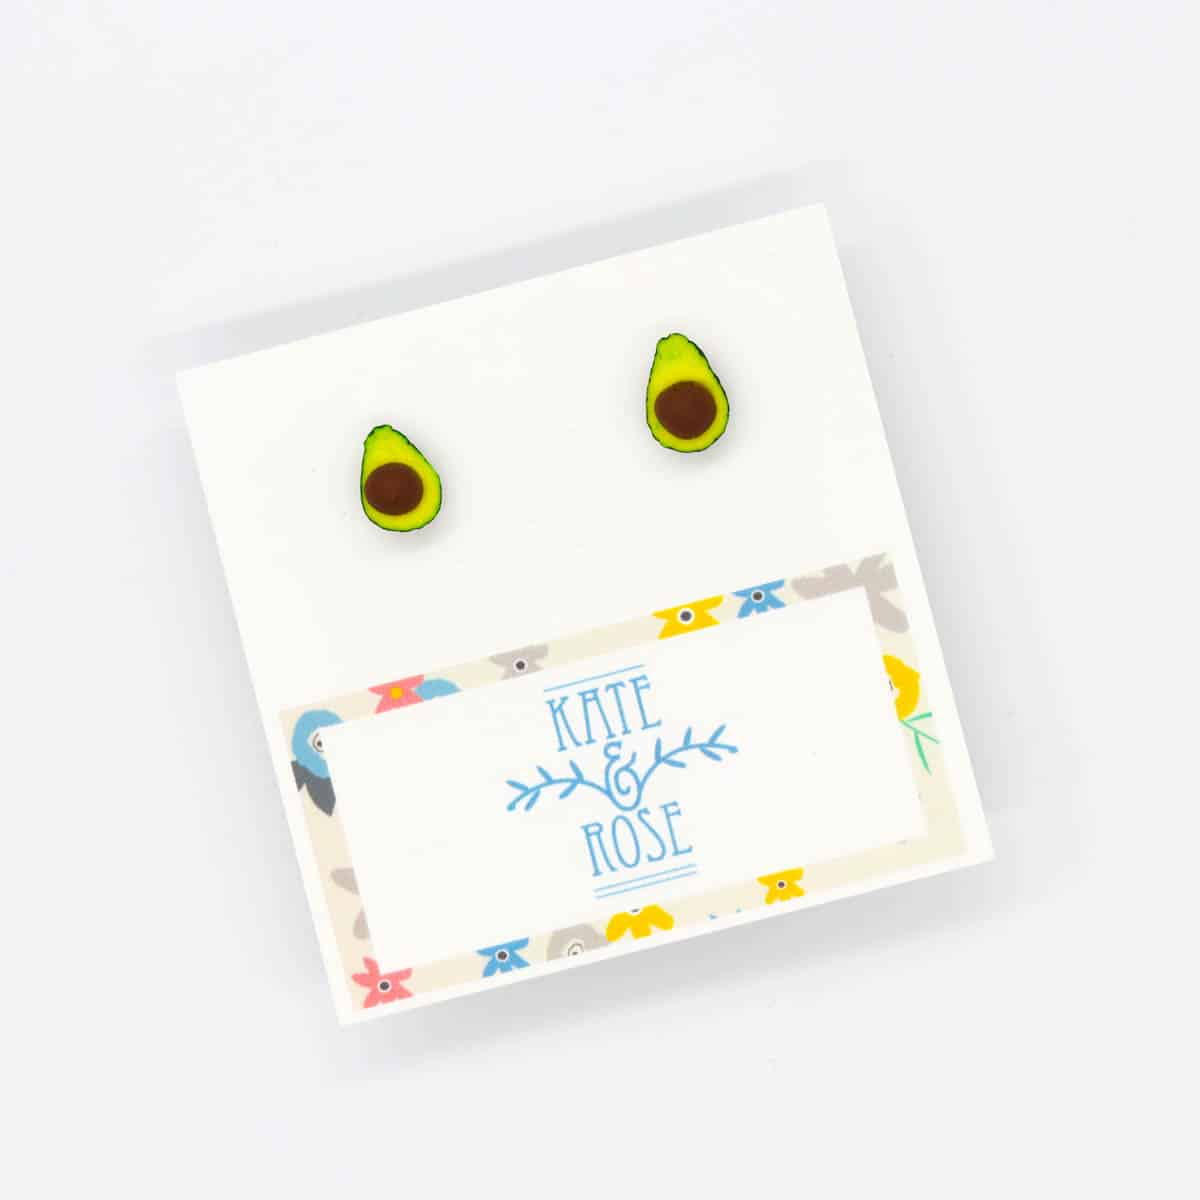 Avocado Studs – Two Pip Avocados –  By Kate And Rose (Fitzroy)